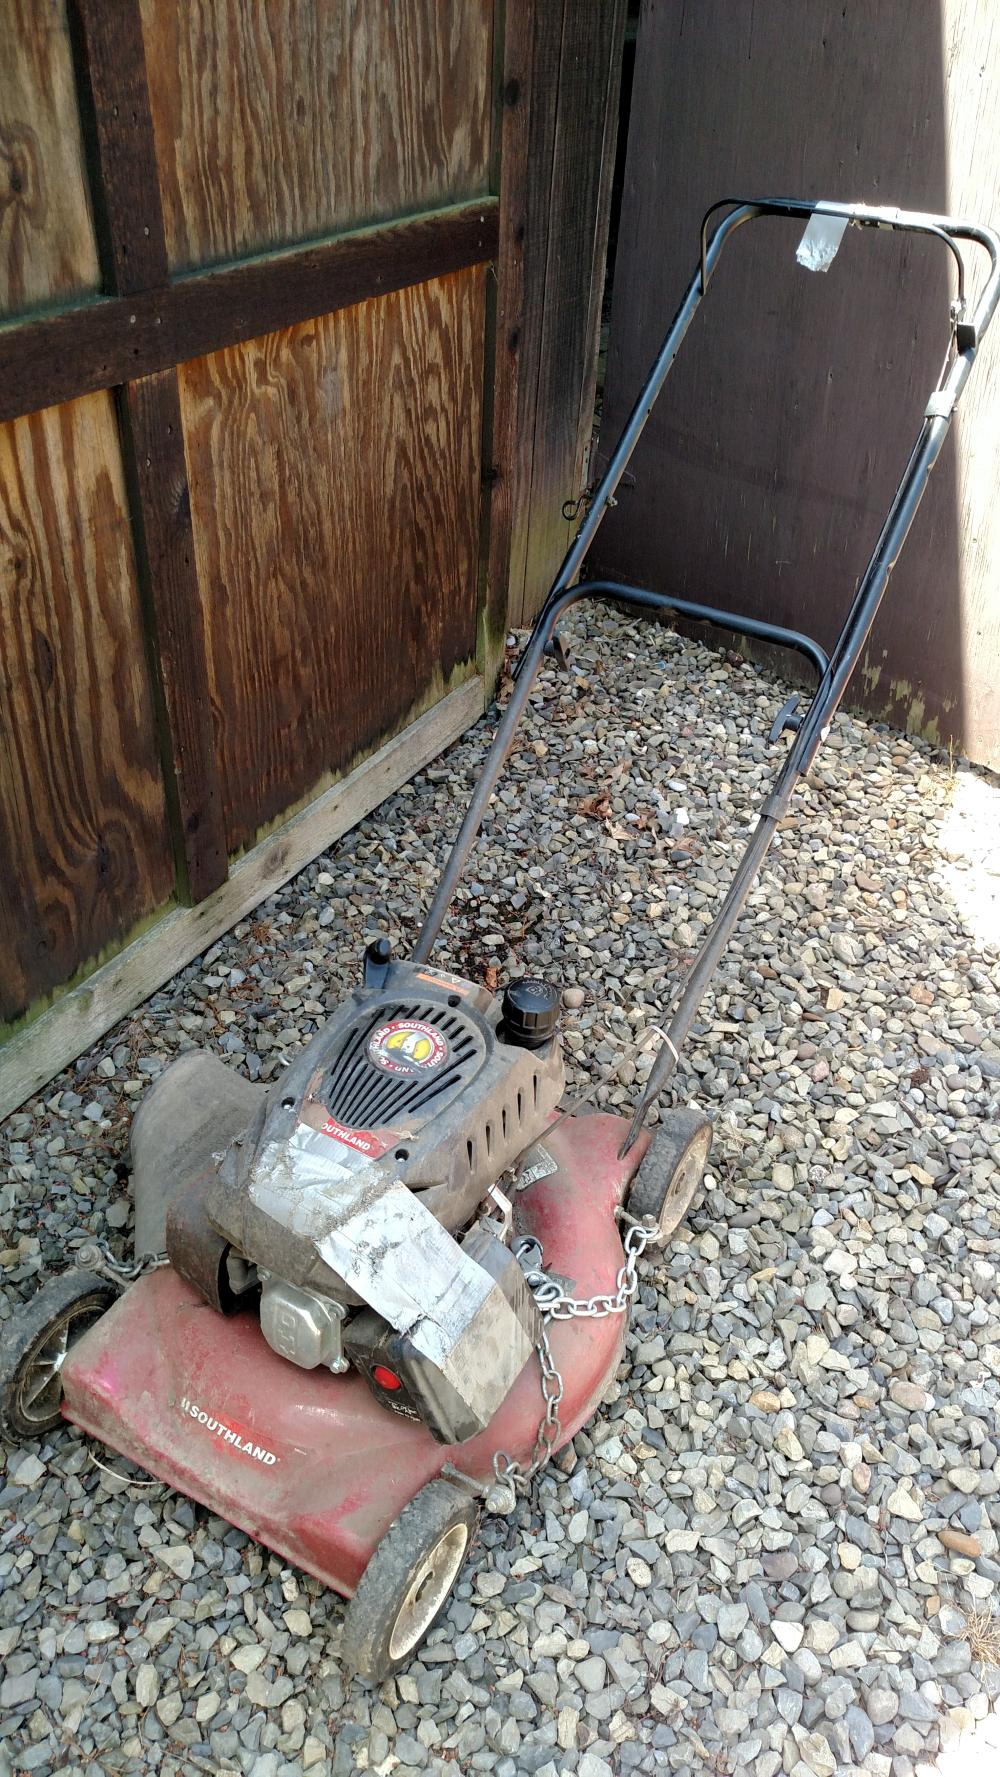 Southland trim mower (needs some work - project mower)